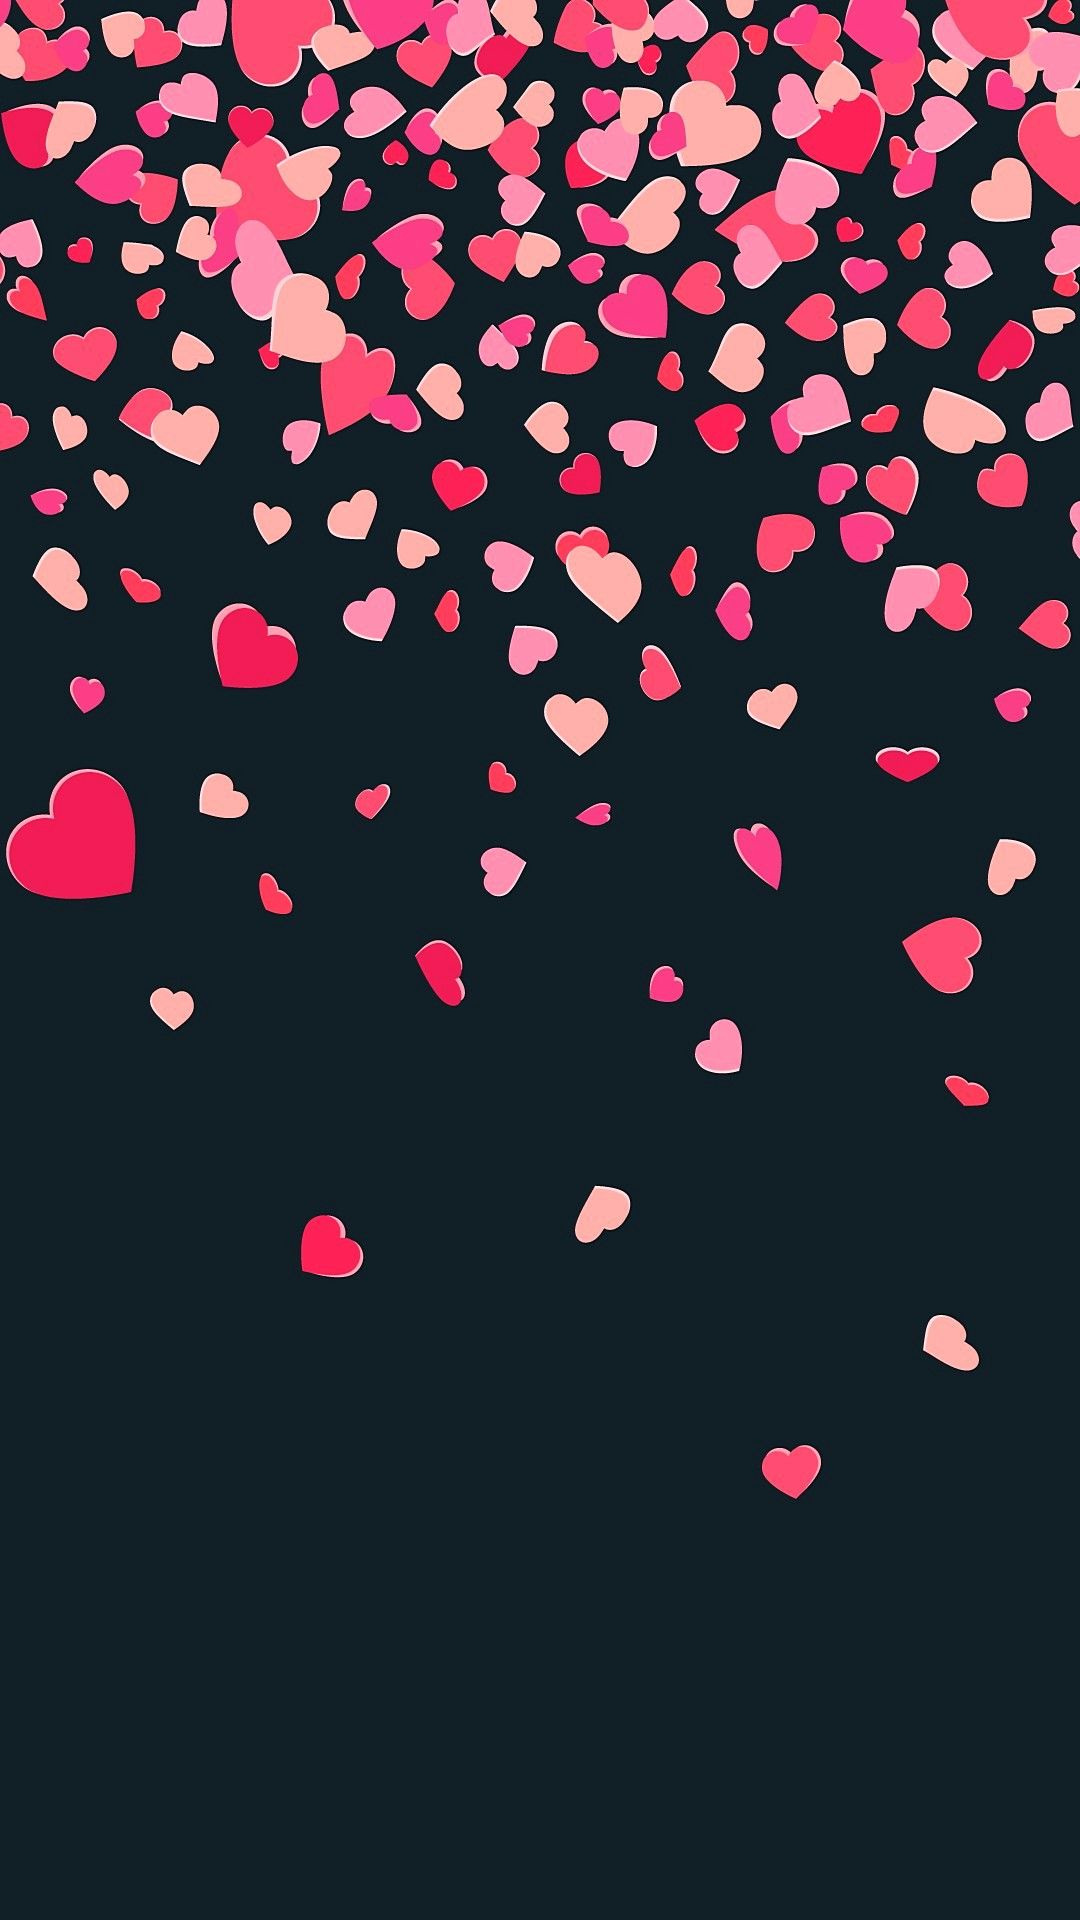 Tons Of Hearts Love Mobile Full Hd Wallpapers 1080x1920 Full Hd Wallpaper Wallpaper Hd Wallpaper Heart wallpaper hd 1080p free download